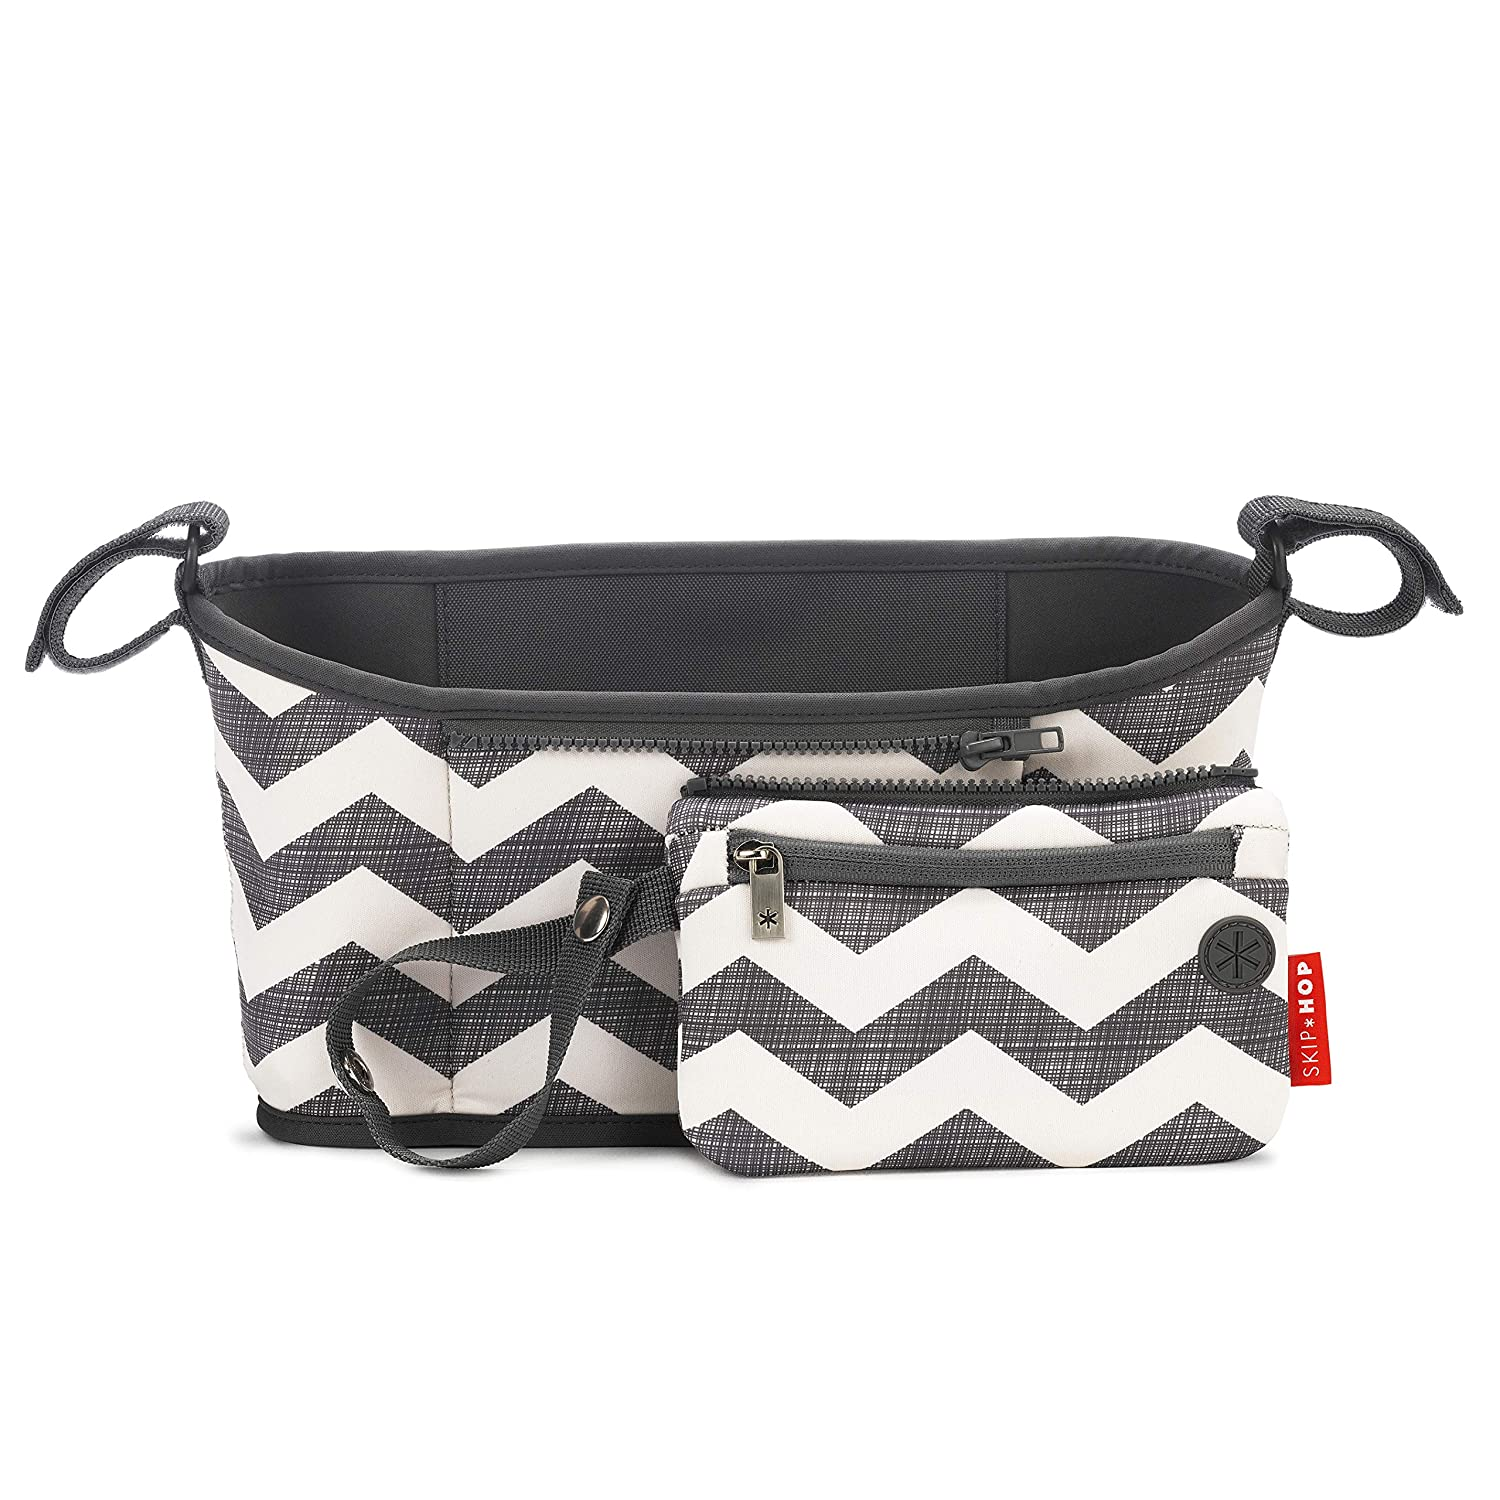 Skip Hop Stroller Organizer with Cup Holders, Grab & Go, Chevron : Baby